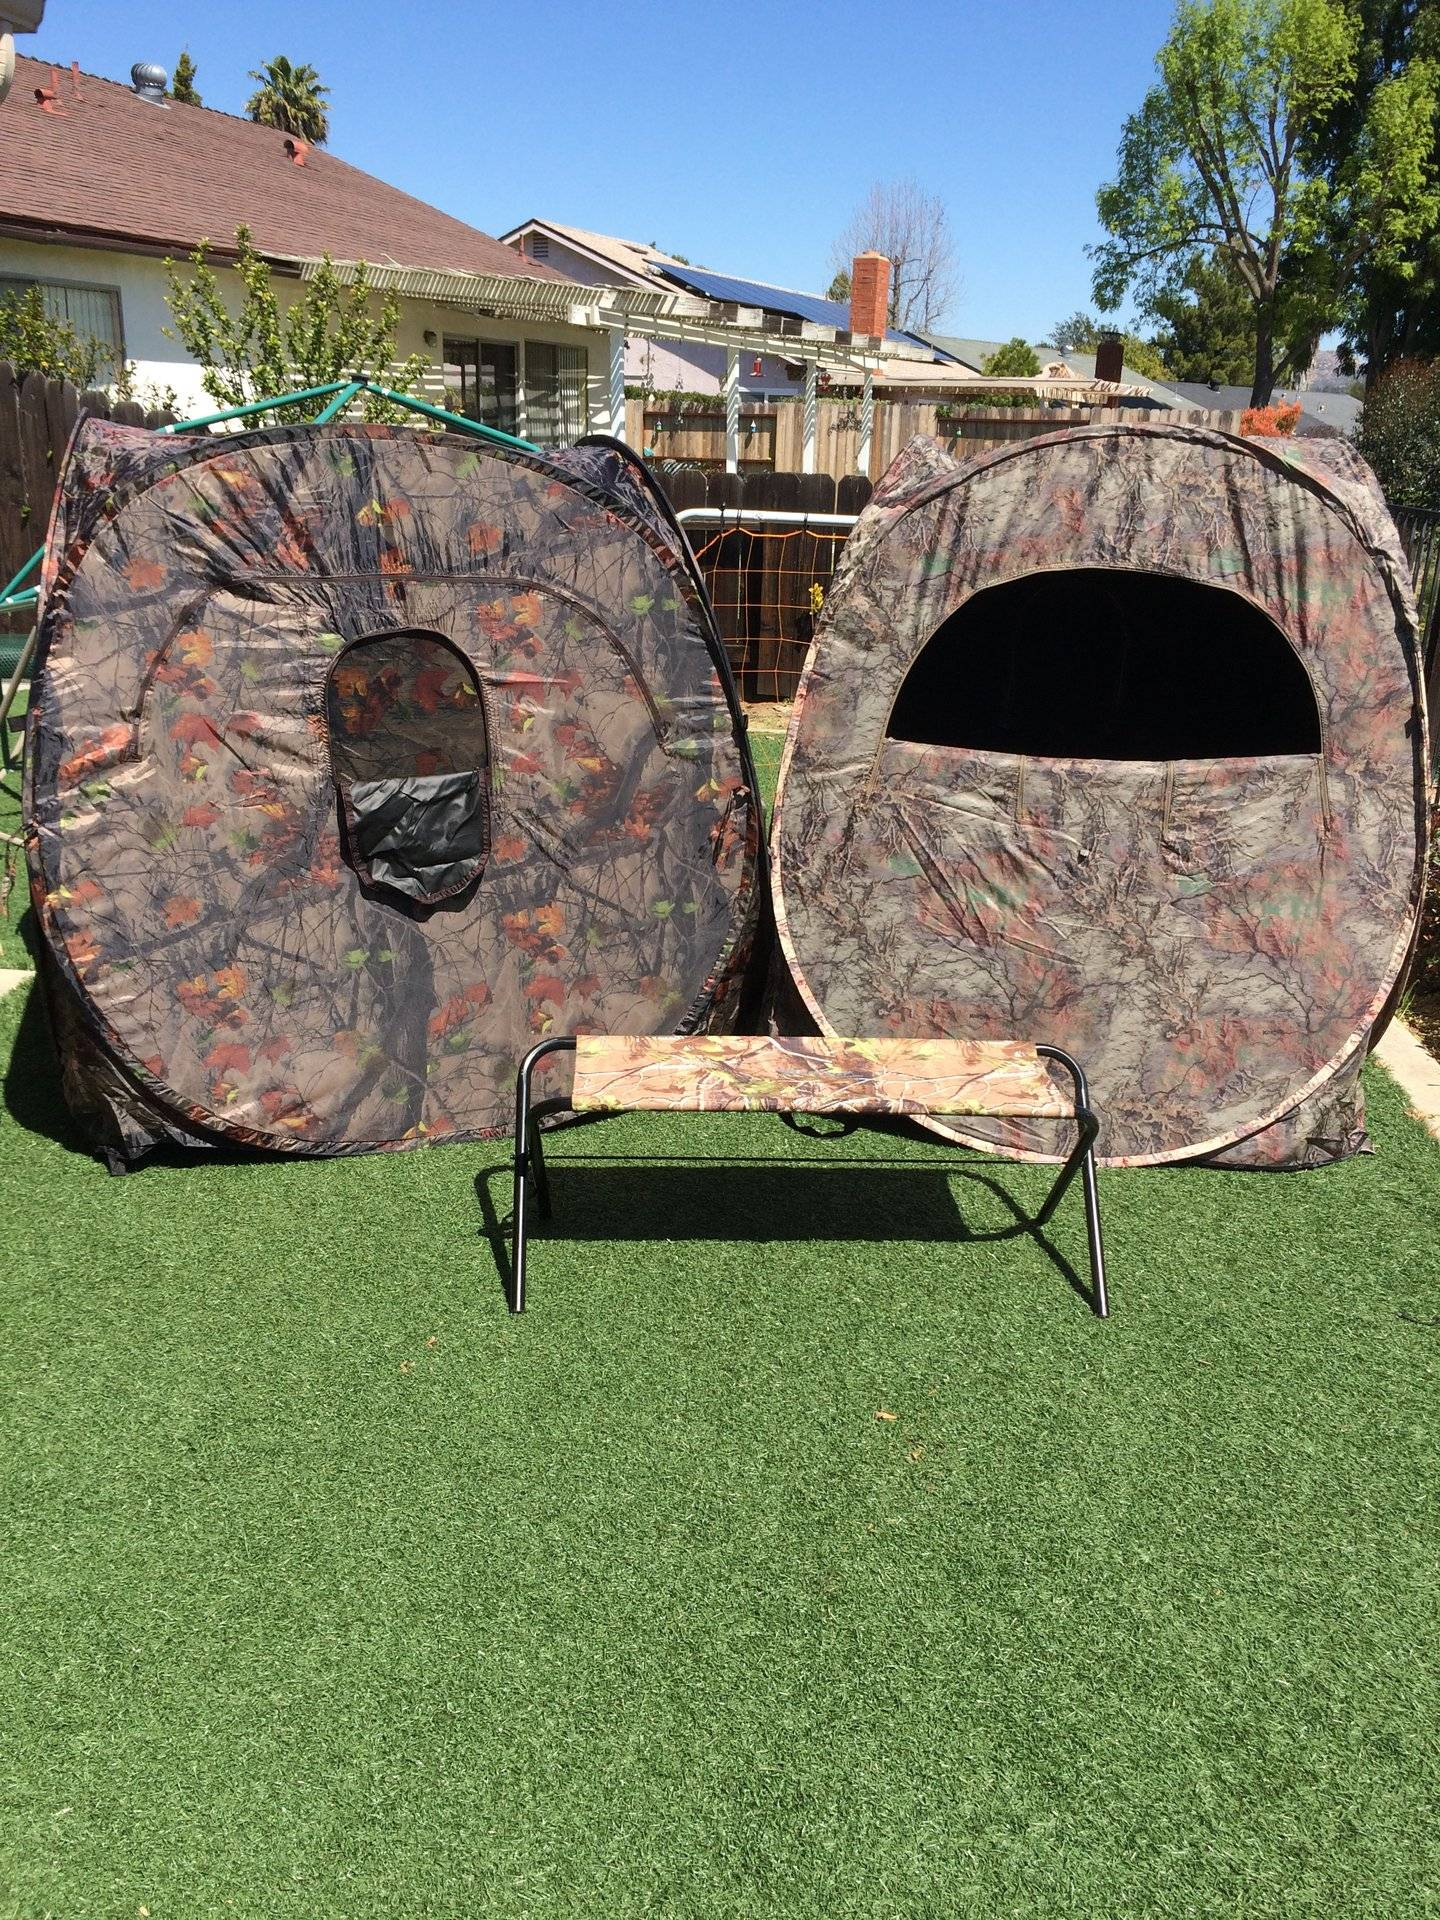 hunter mesh pop blind window proof product up shop hunting deer camo portable costway weather blinds ground